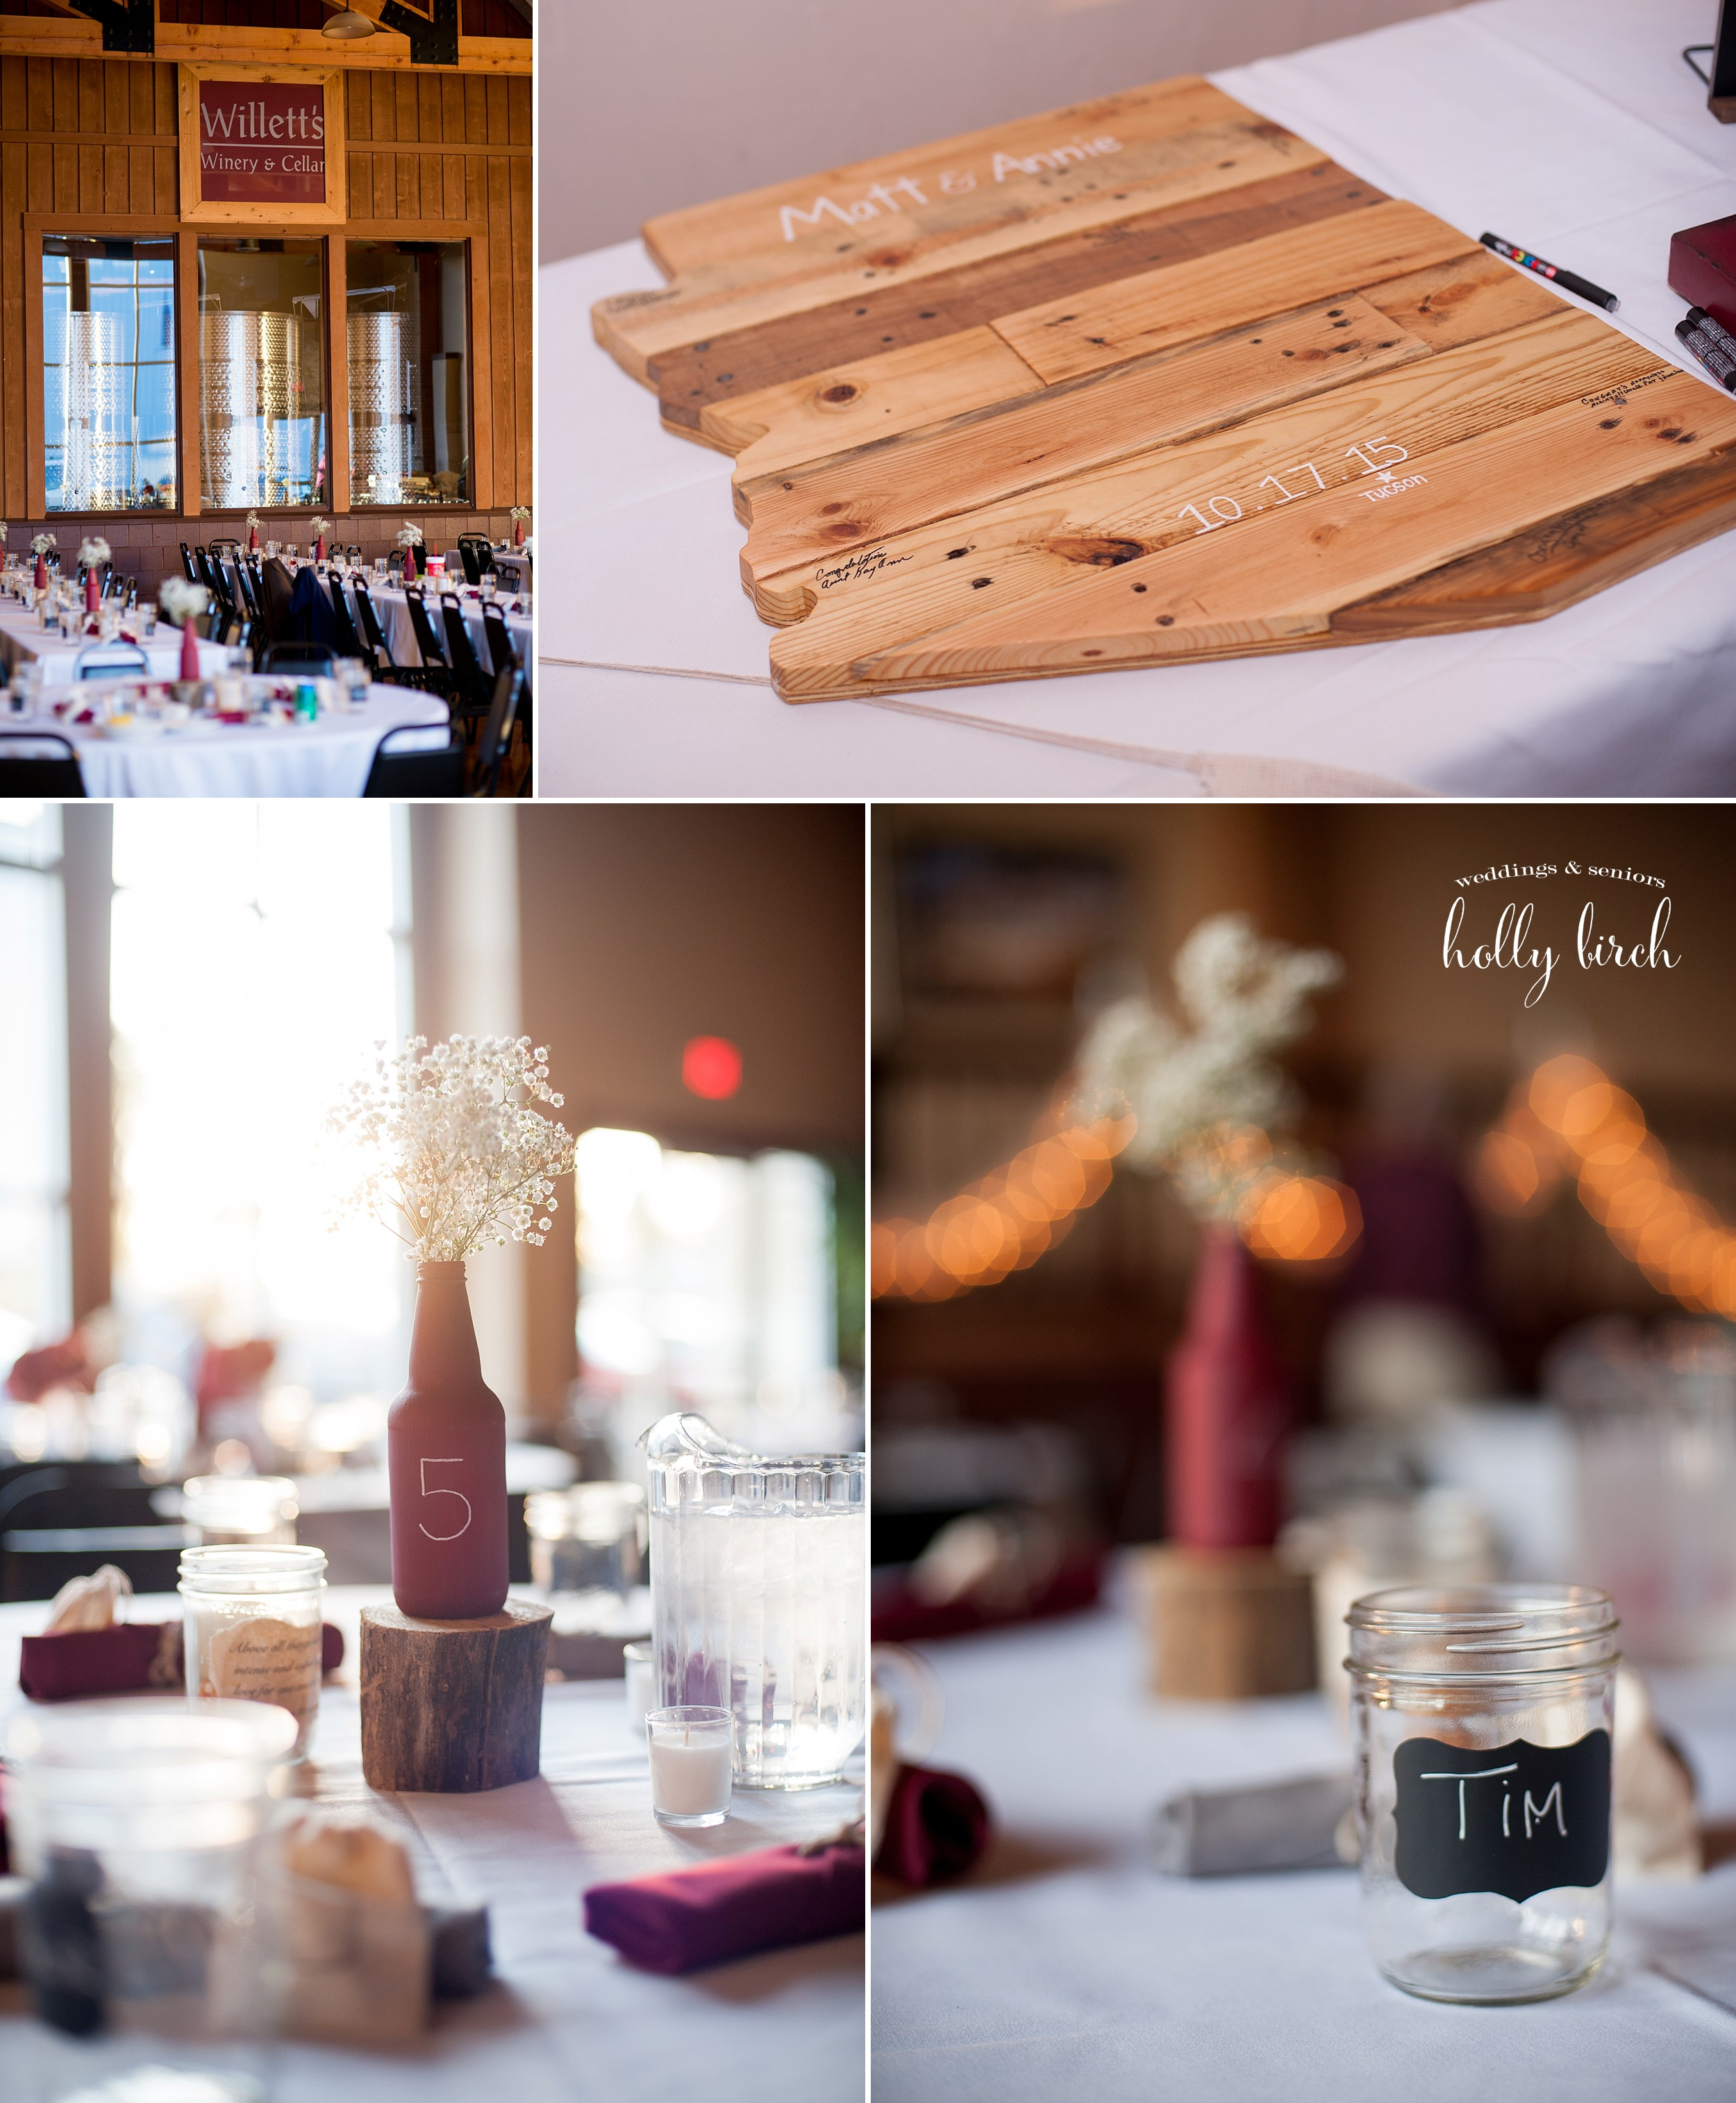 Willett's Winery Manito reception details